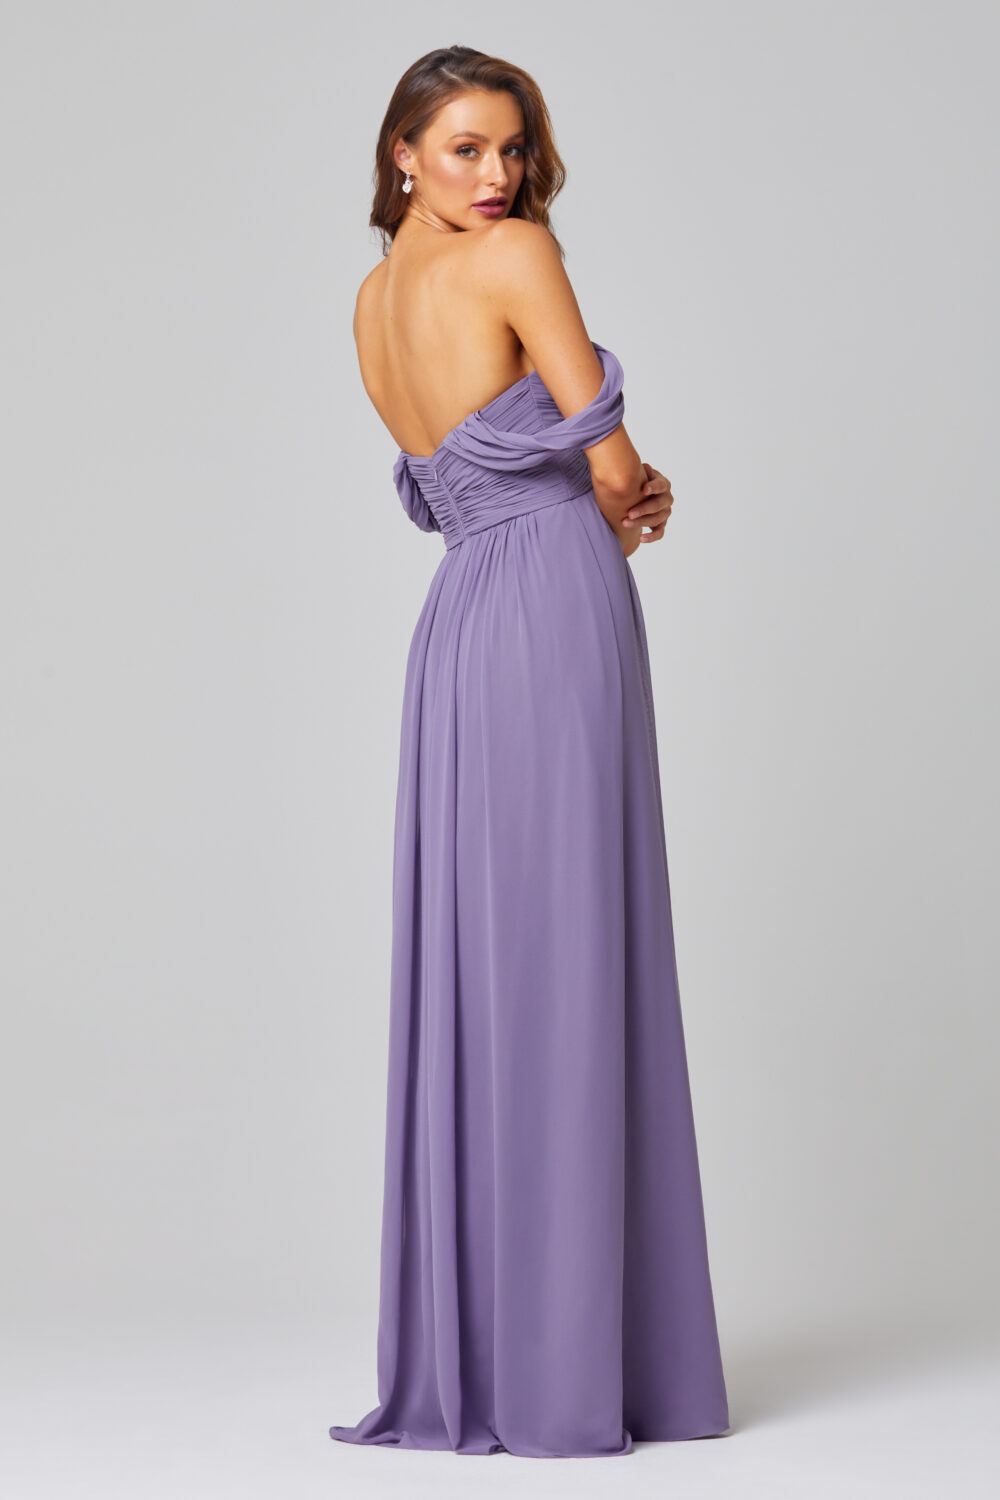 Lucy Off Shoulder Bridesmaid Dress - TO838-LAVENDER-BACK